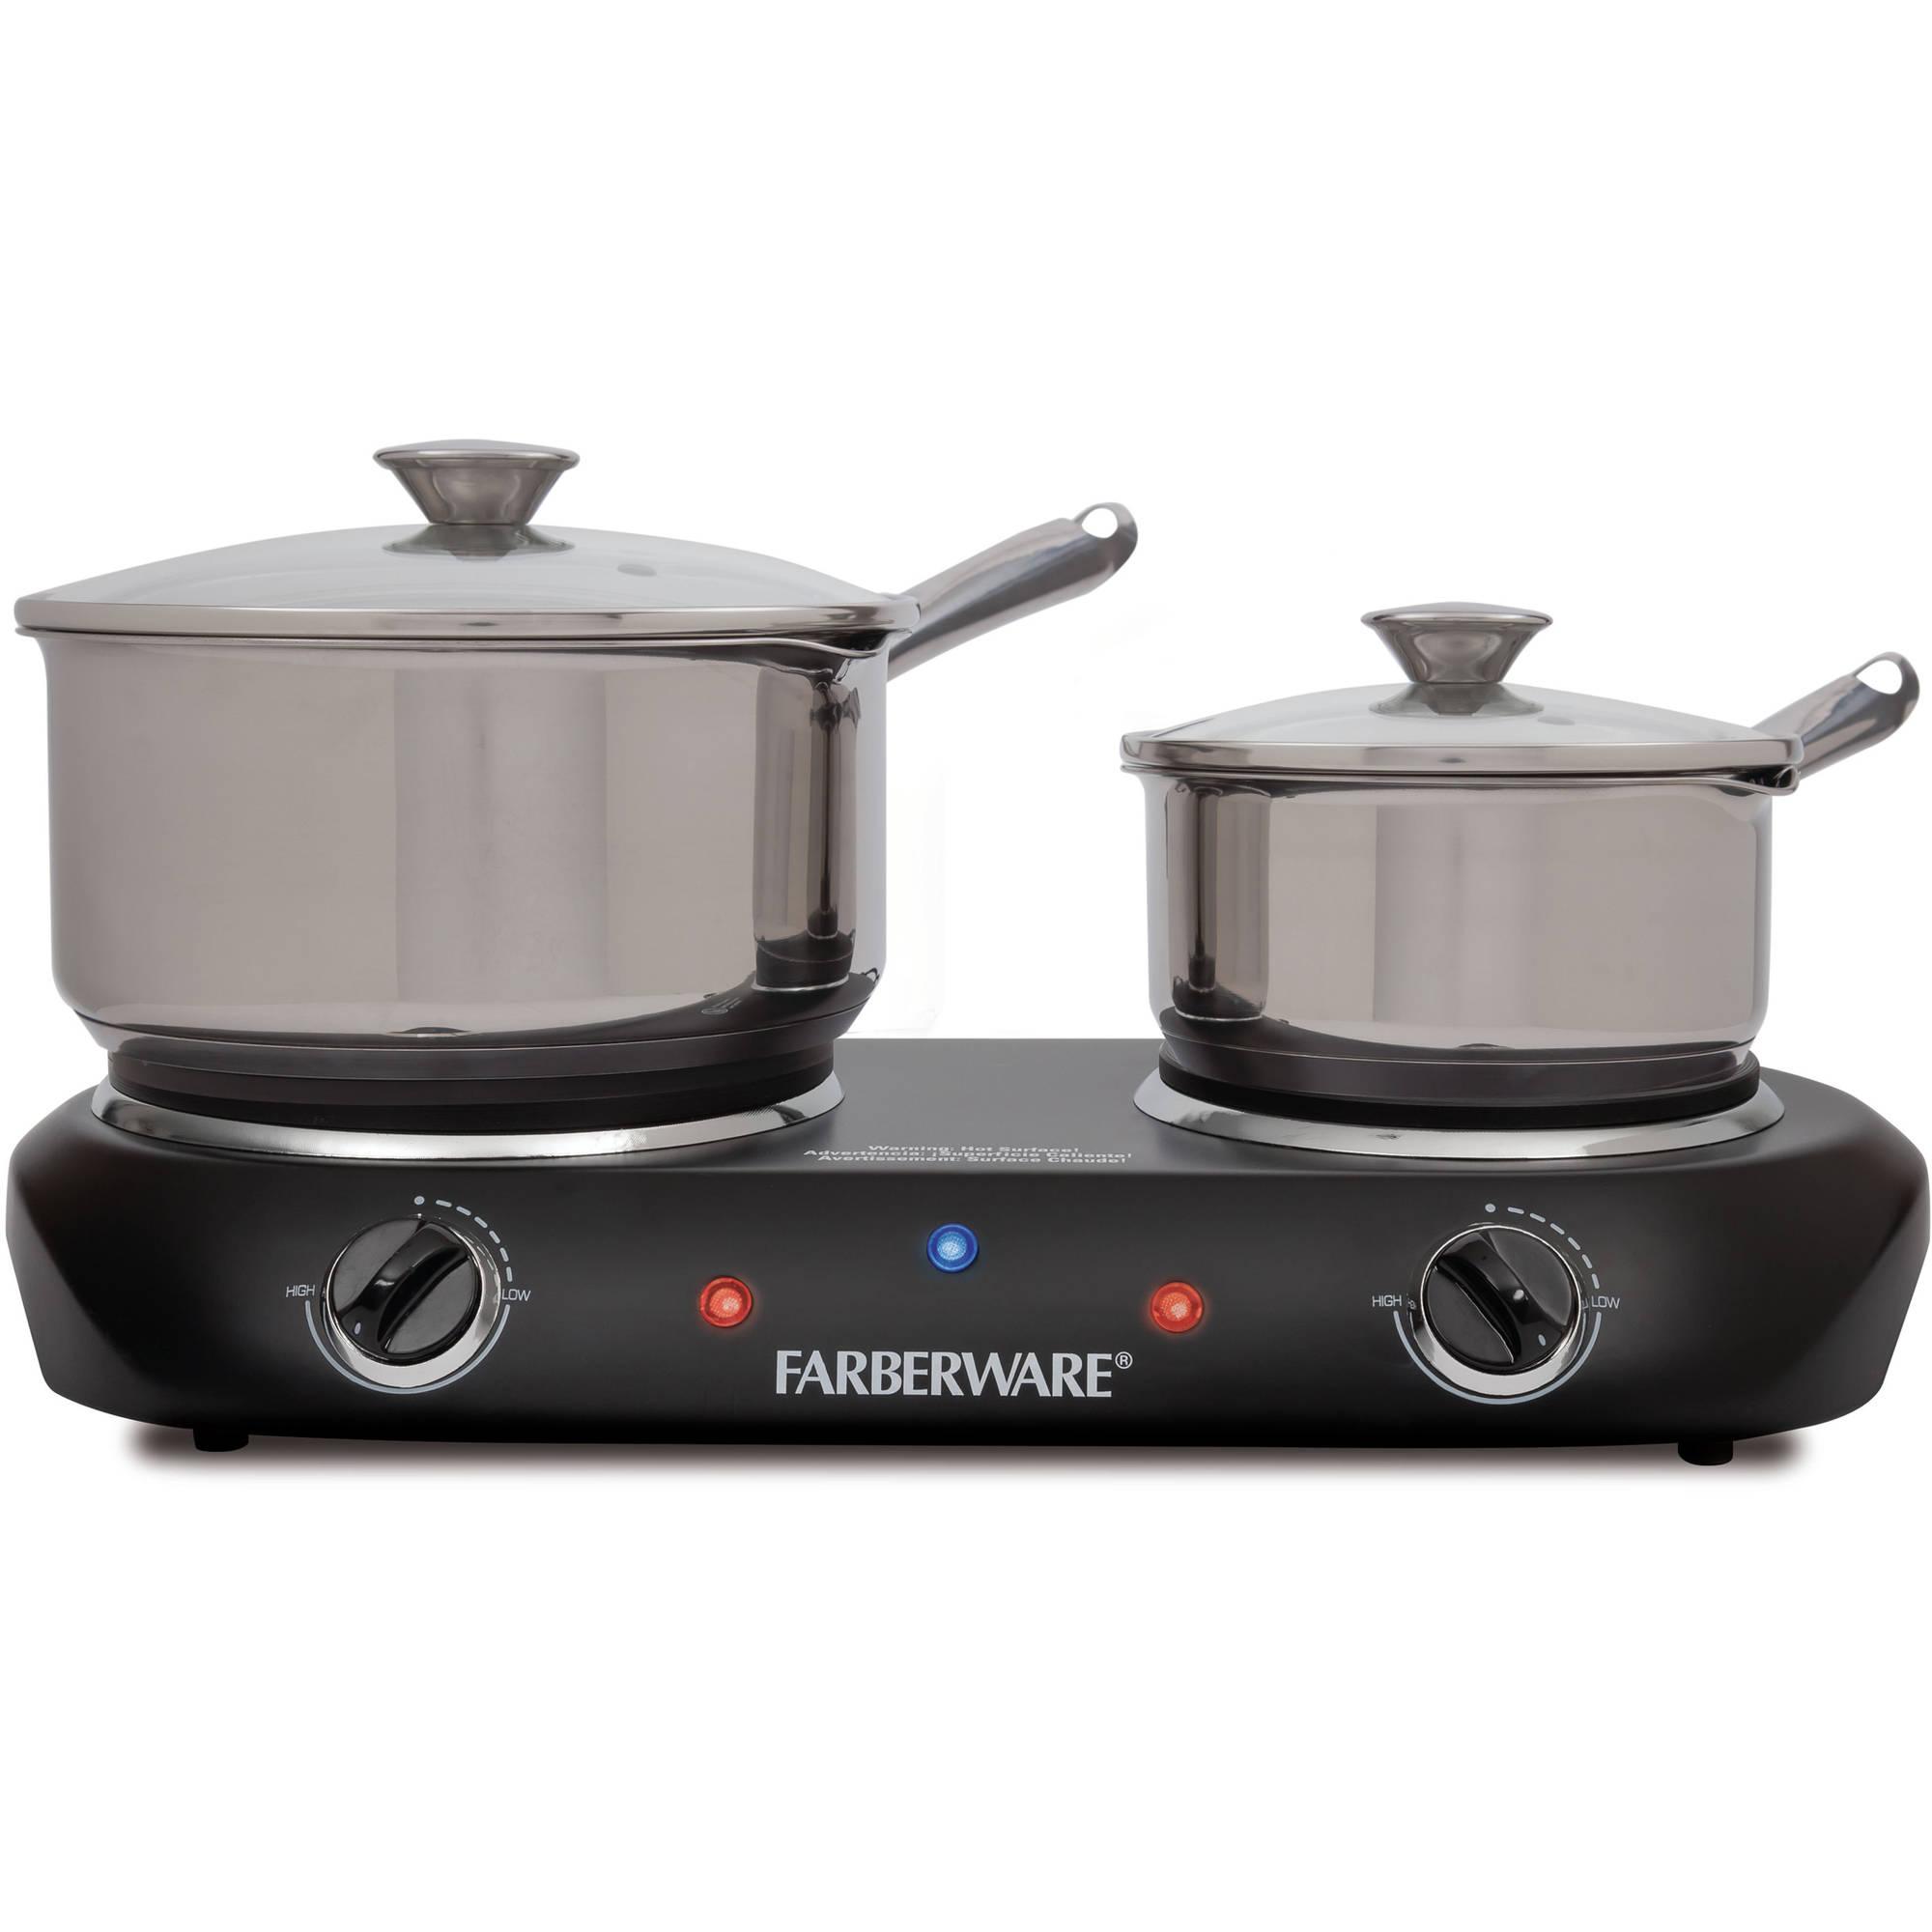 Farberware Double Burner   Walmart.com